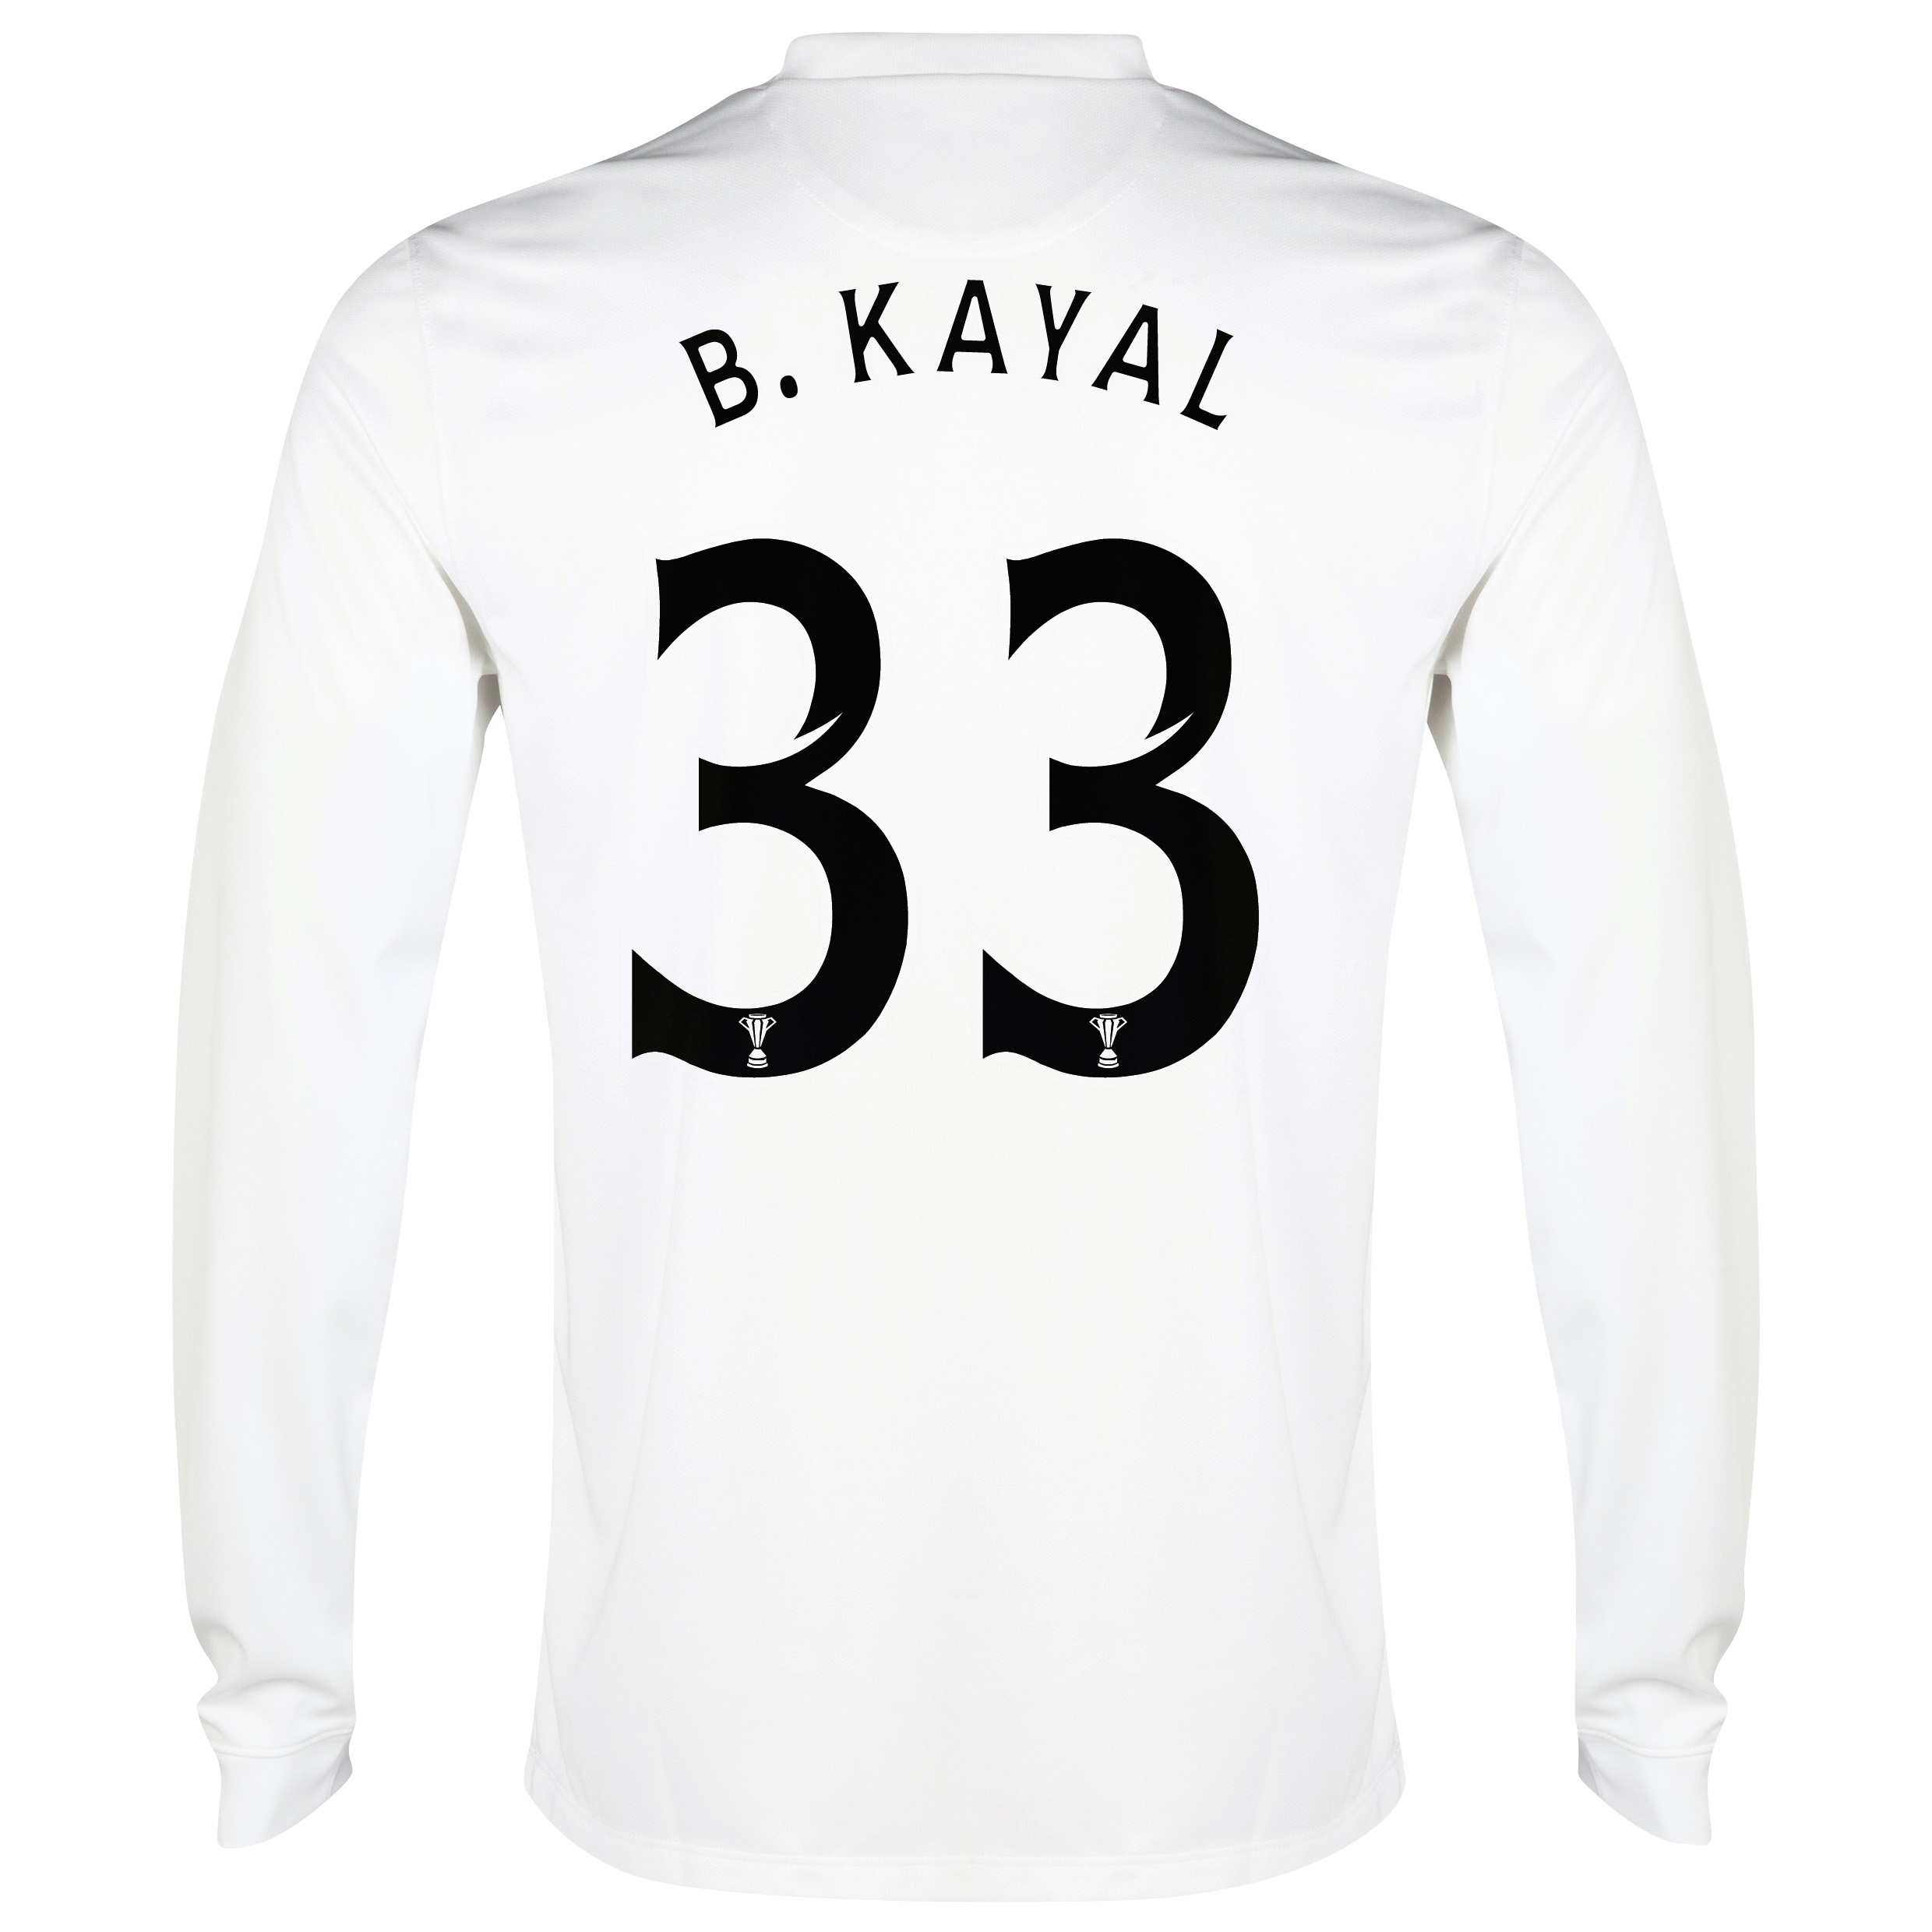 Celtic 3rd Shirt 2014/15 - Long Sleeved - Unsponsored White with B.Kayal 33 printing